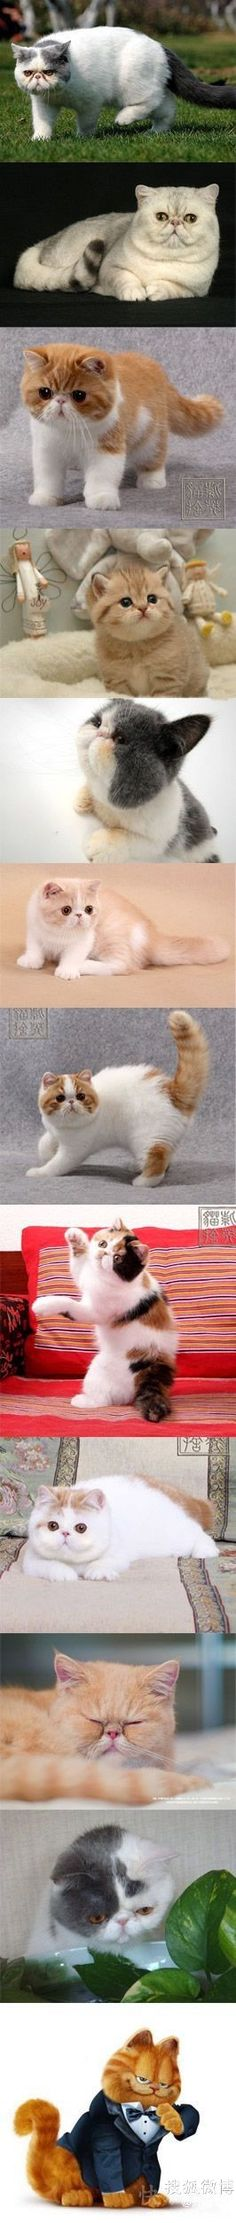 One day, I'd like a Persian kitteh again